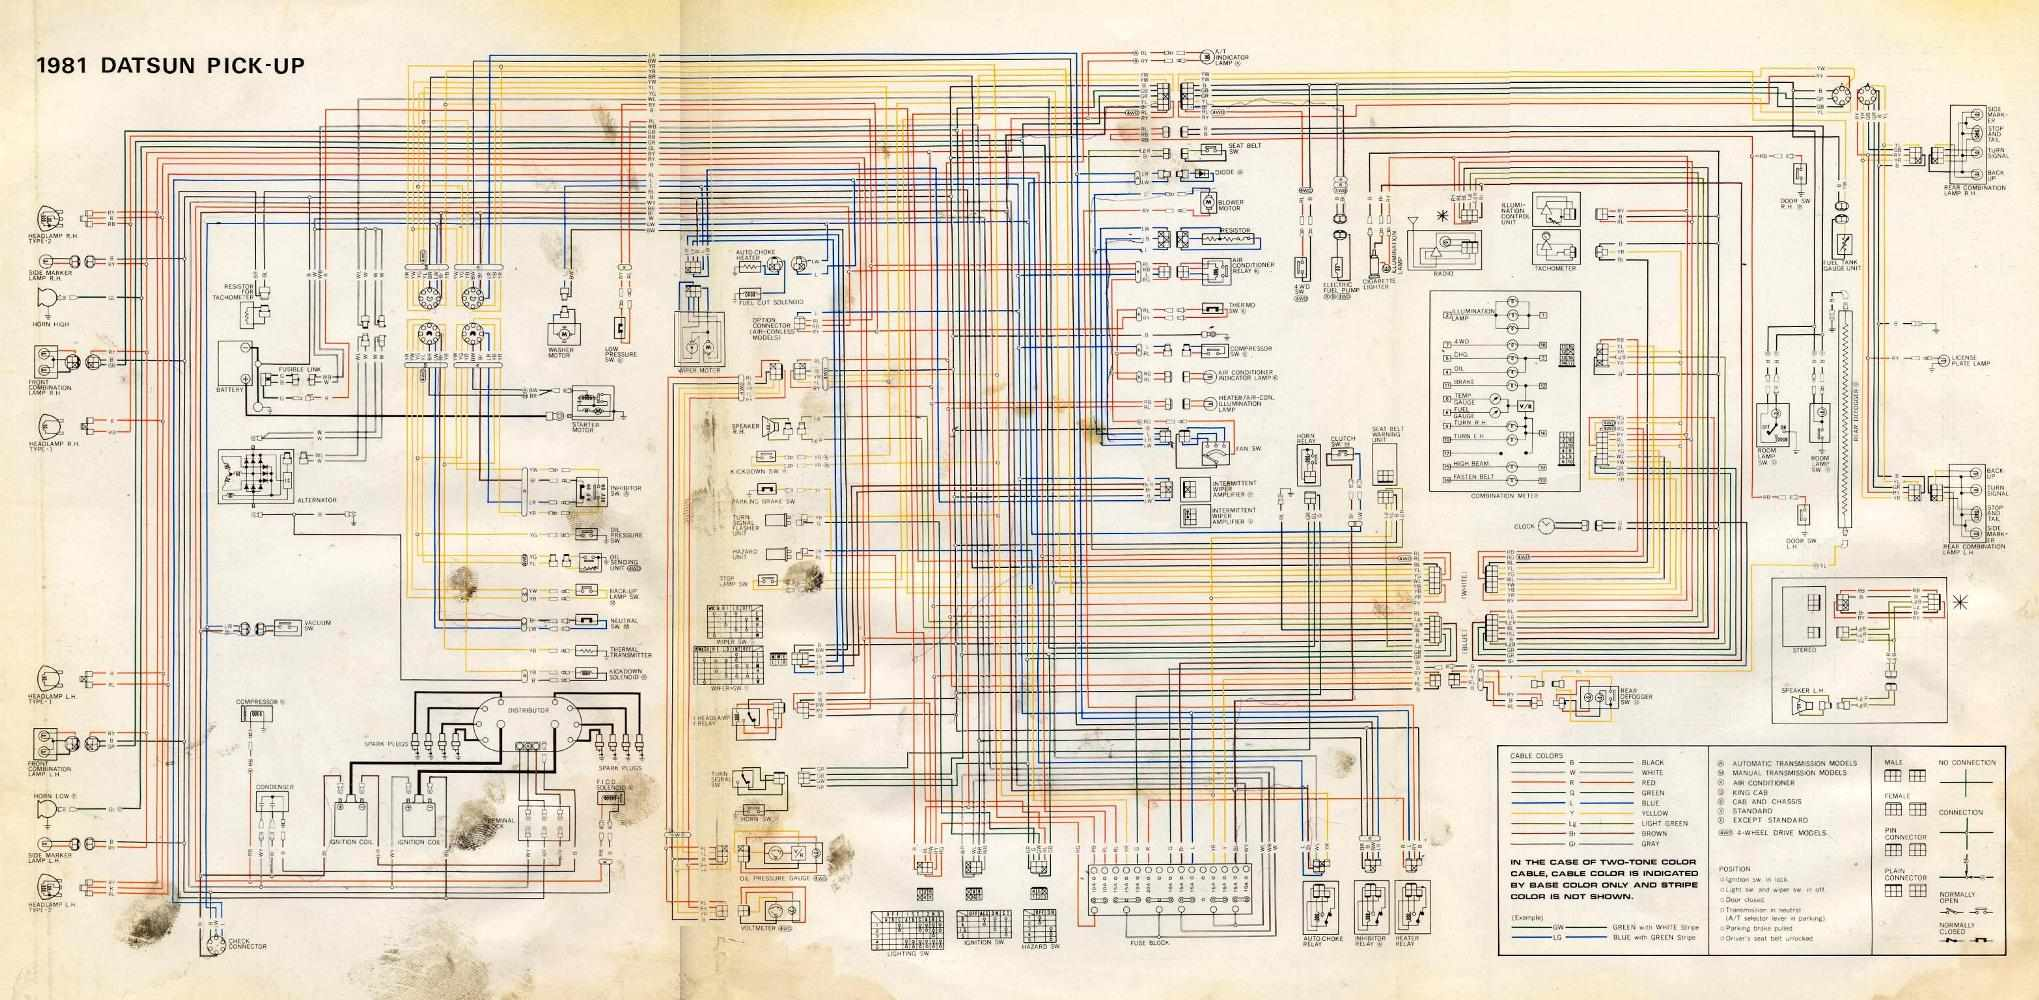 Sr Vewiringdiagram further School Bus Engine  partment Diagram furthermore M Abrams Tusk moreover Delighted Thomas School Bus Wiring Diagrams Ideas Electrical Of Thomas School Bus Wiring Diagrams likewise F Abfe C B F Eac Eaffa F Bg. on blue bird bus wiring diagrams